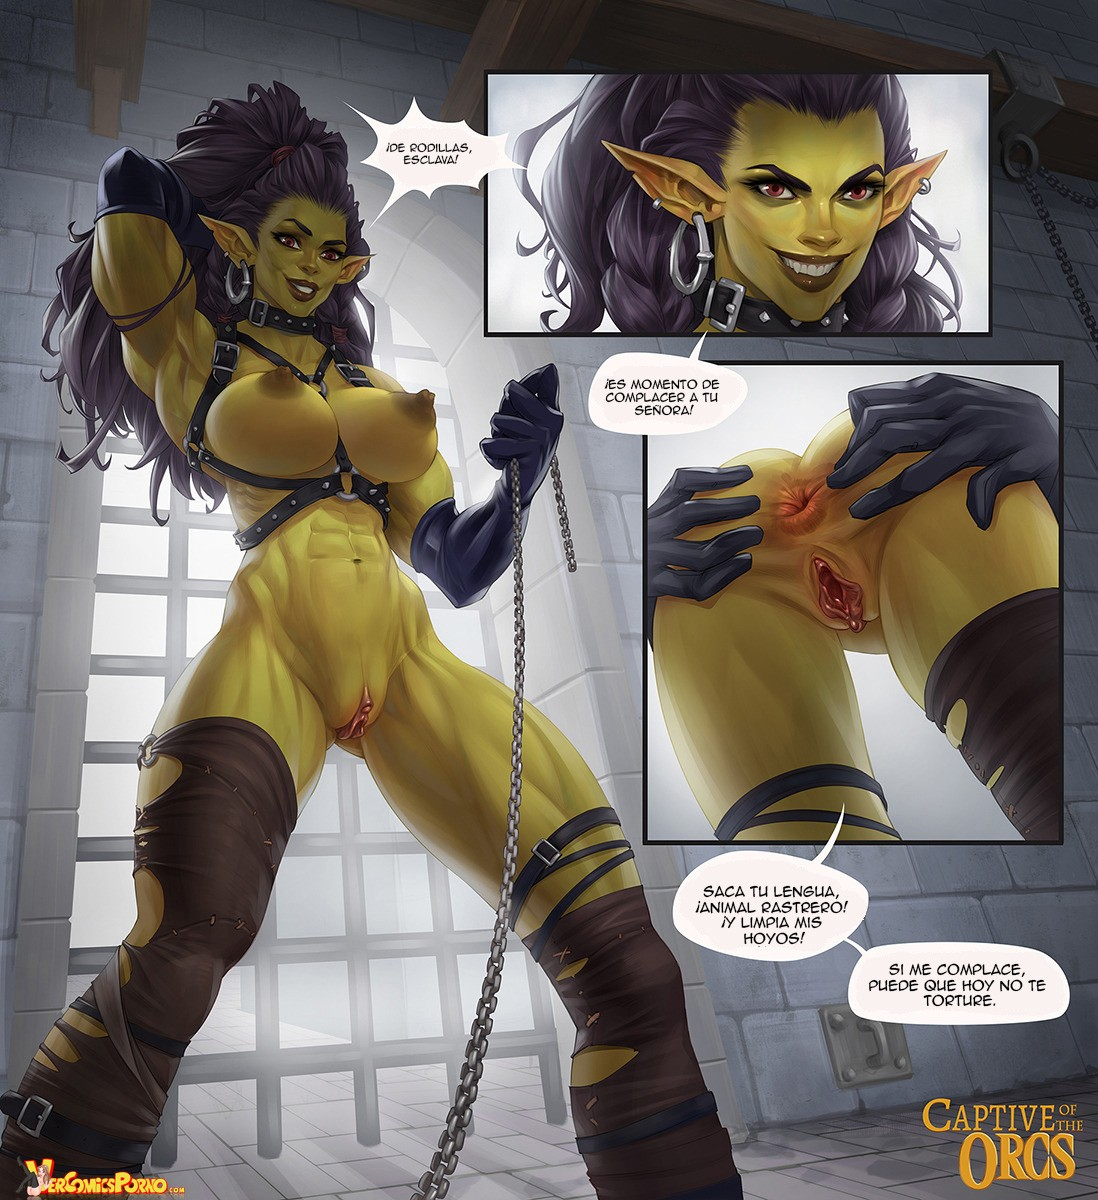 Rino99-Captive-of-the-Orcs-19.jpg